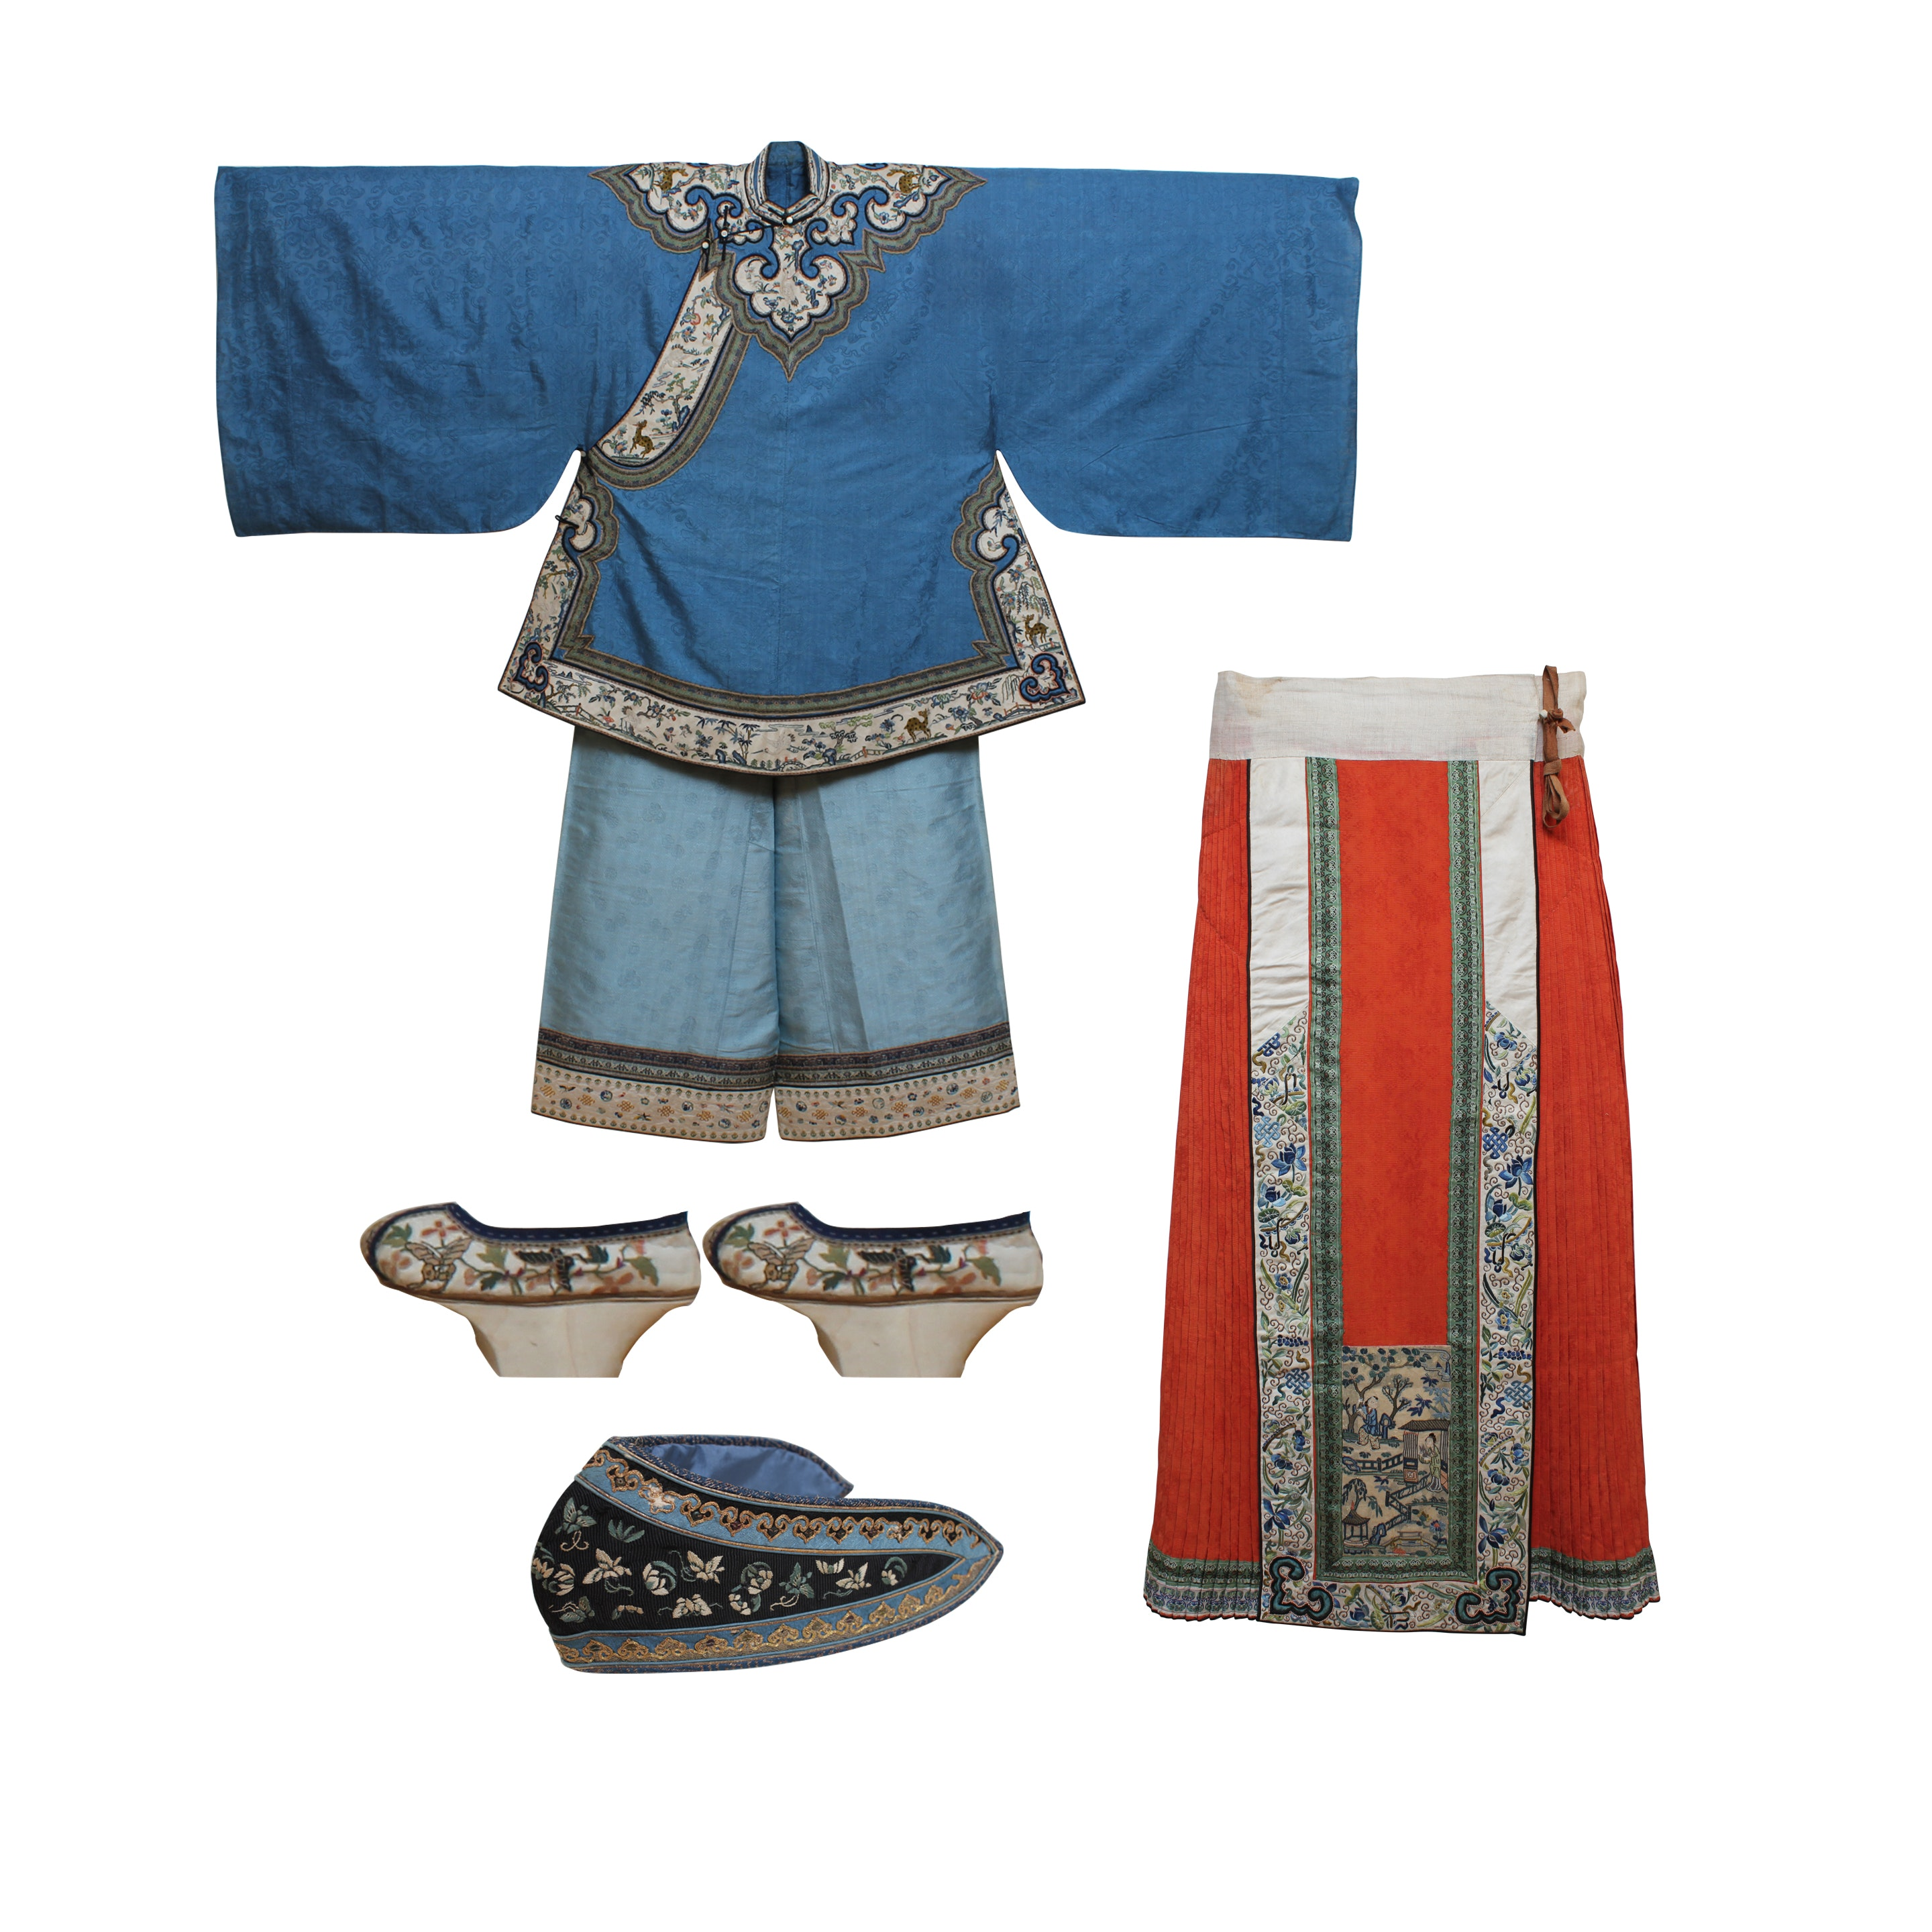 Antique Imperial Chinese Robes with Letter of Provenance